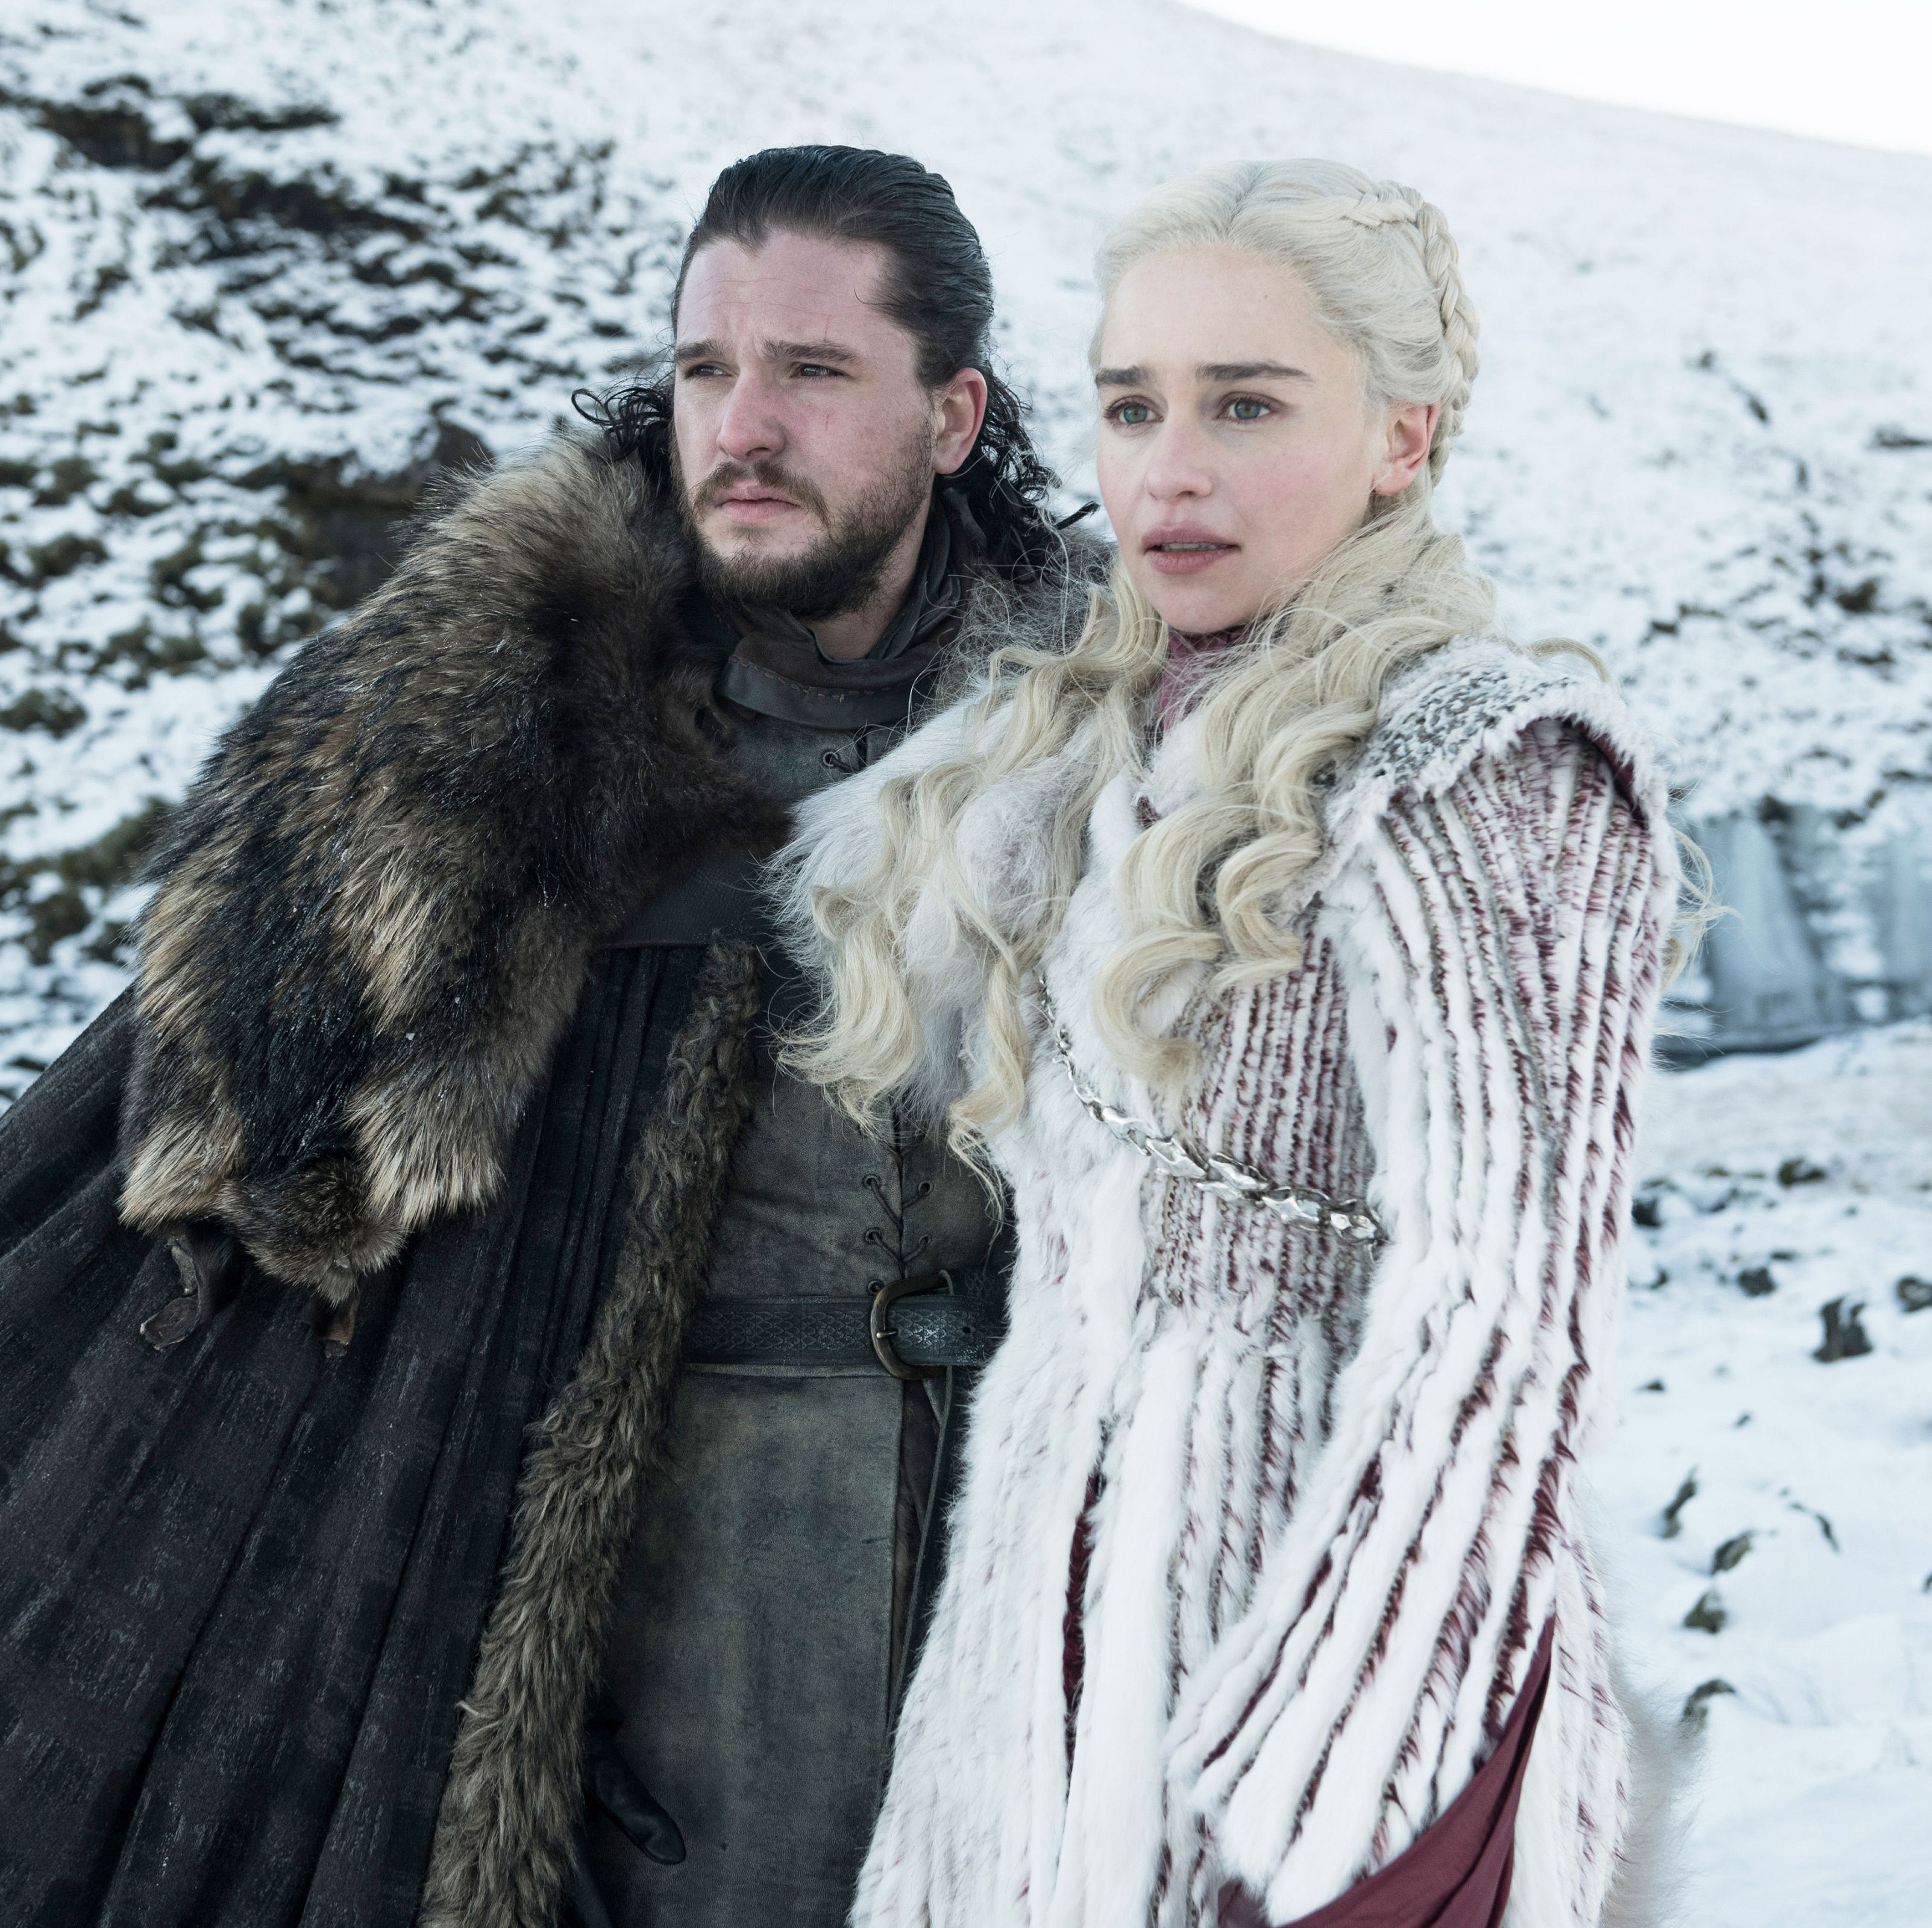 Game of Thrones Season 8 Release Date, Casting, Spoilers, and More – GoT Final Season